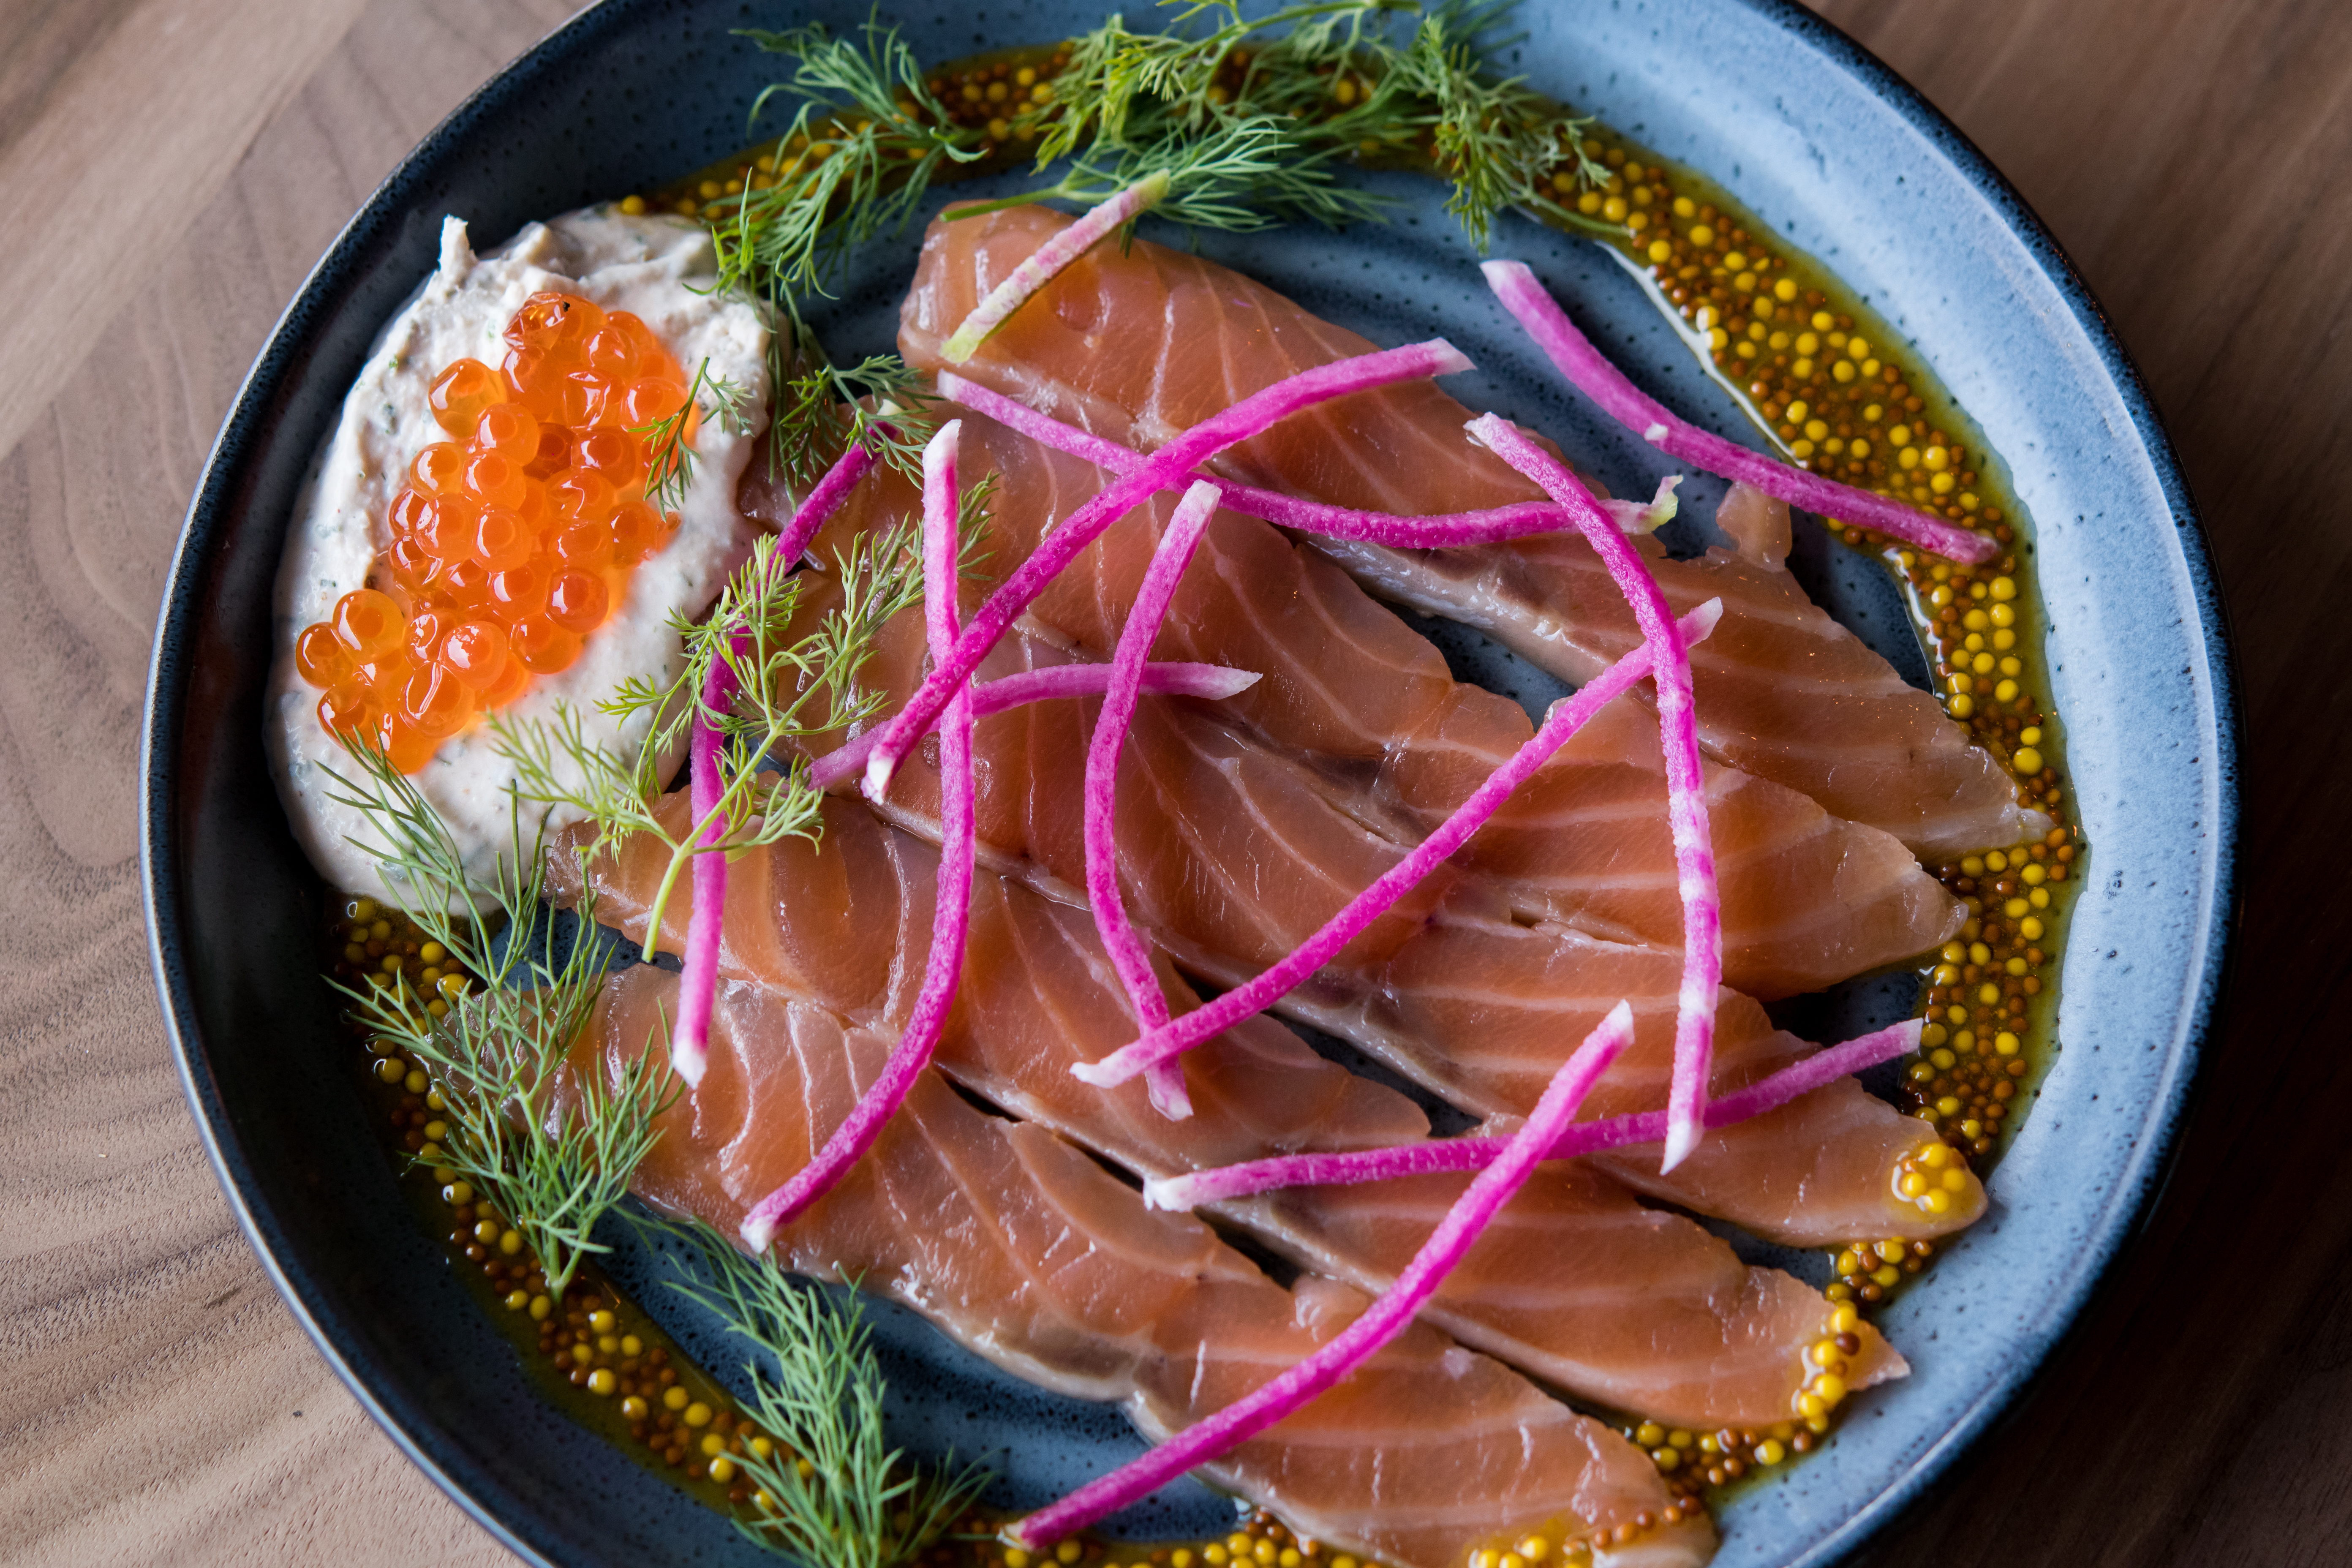 King Salmon Gravlax & Roe with tarragon creme fraiche and grapefruit mustard (Image courtesy of Fire Vine / Aerlume).